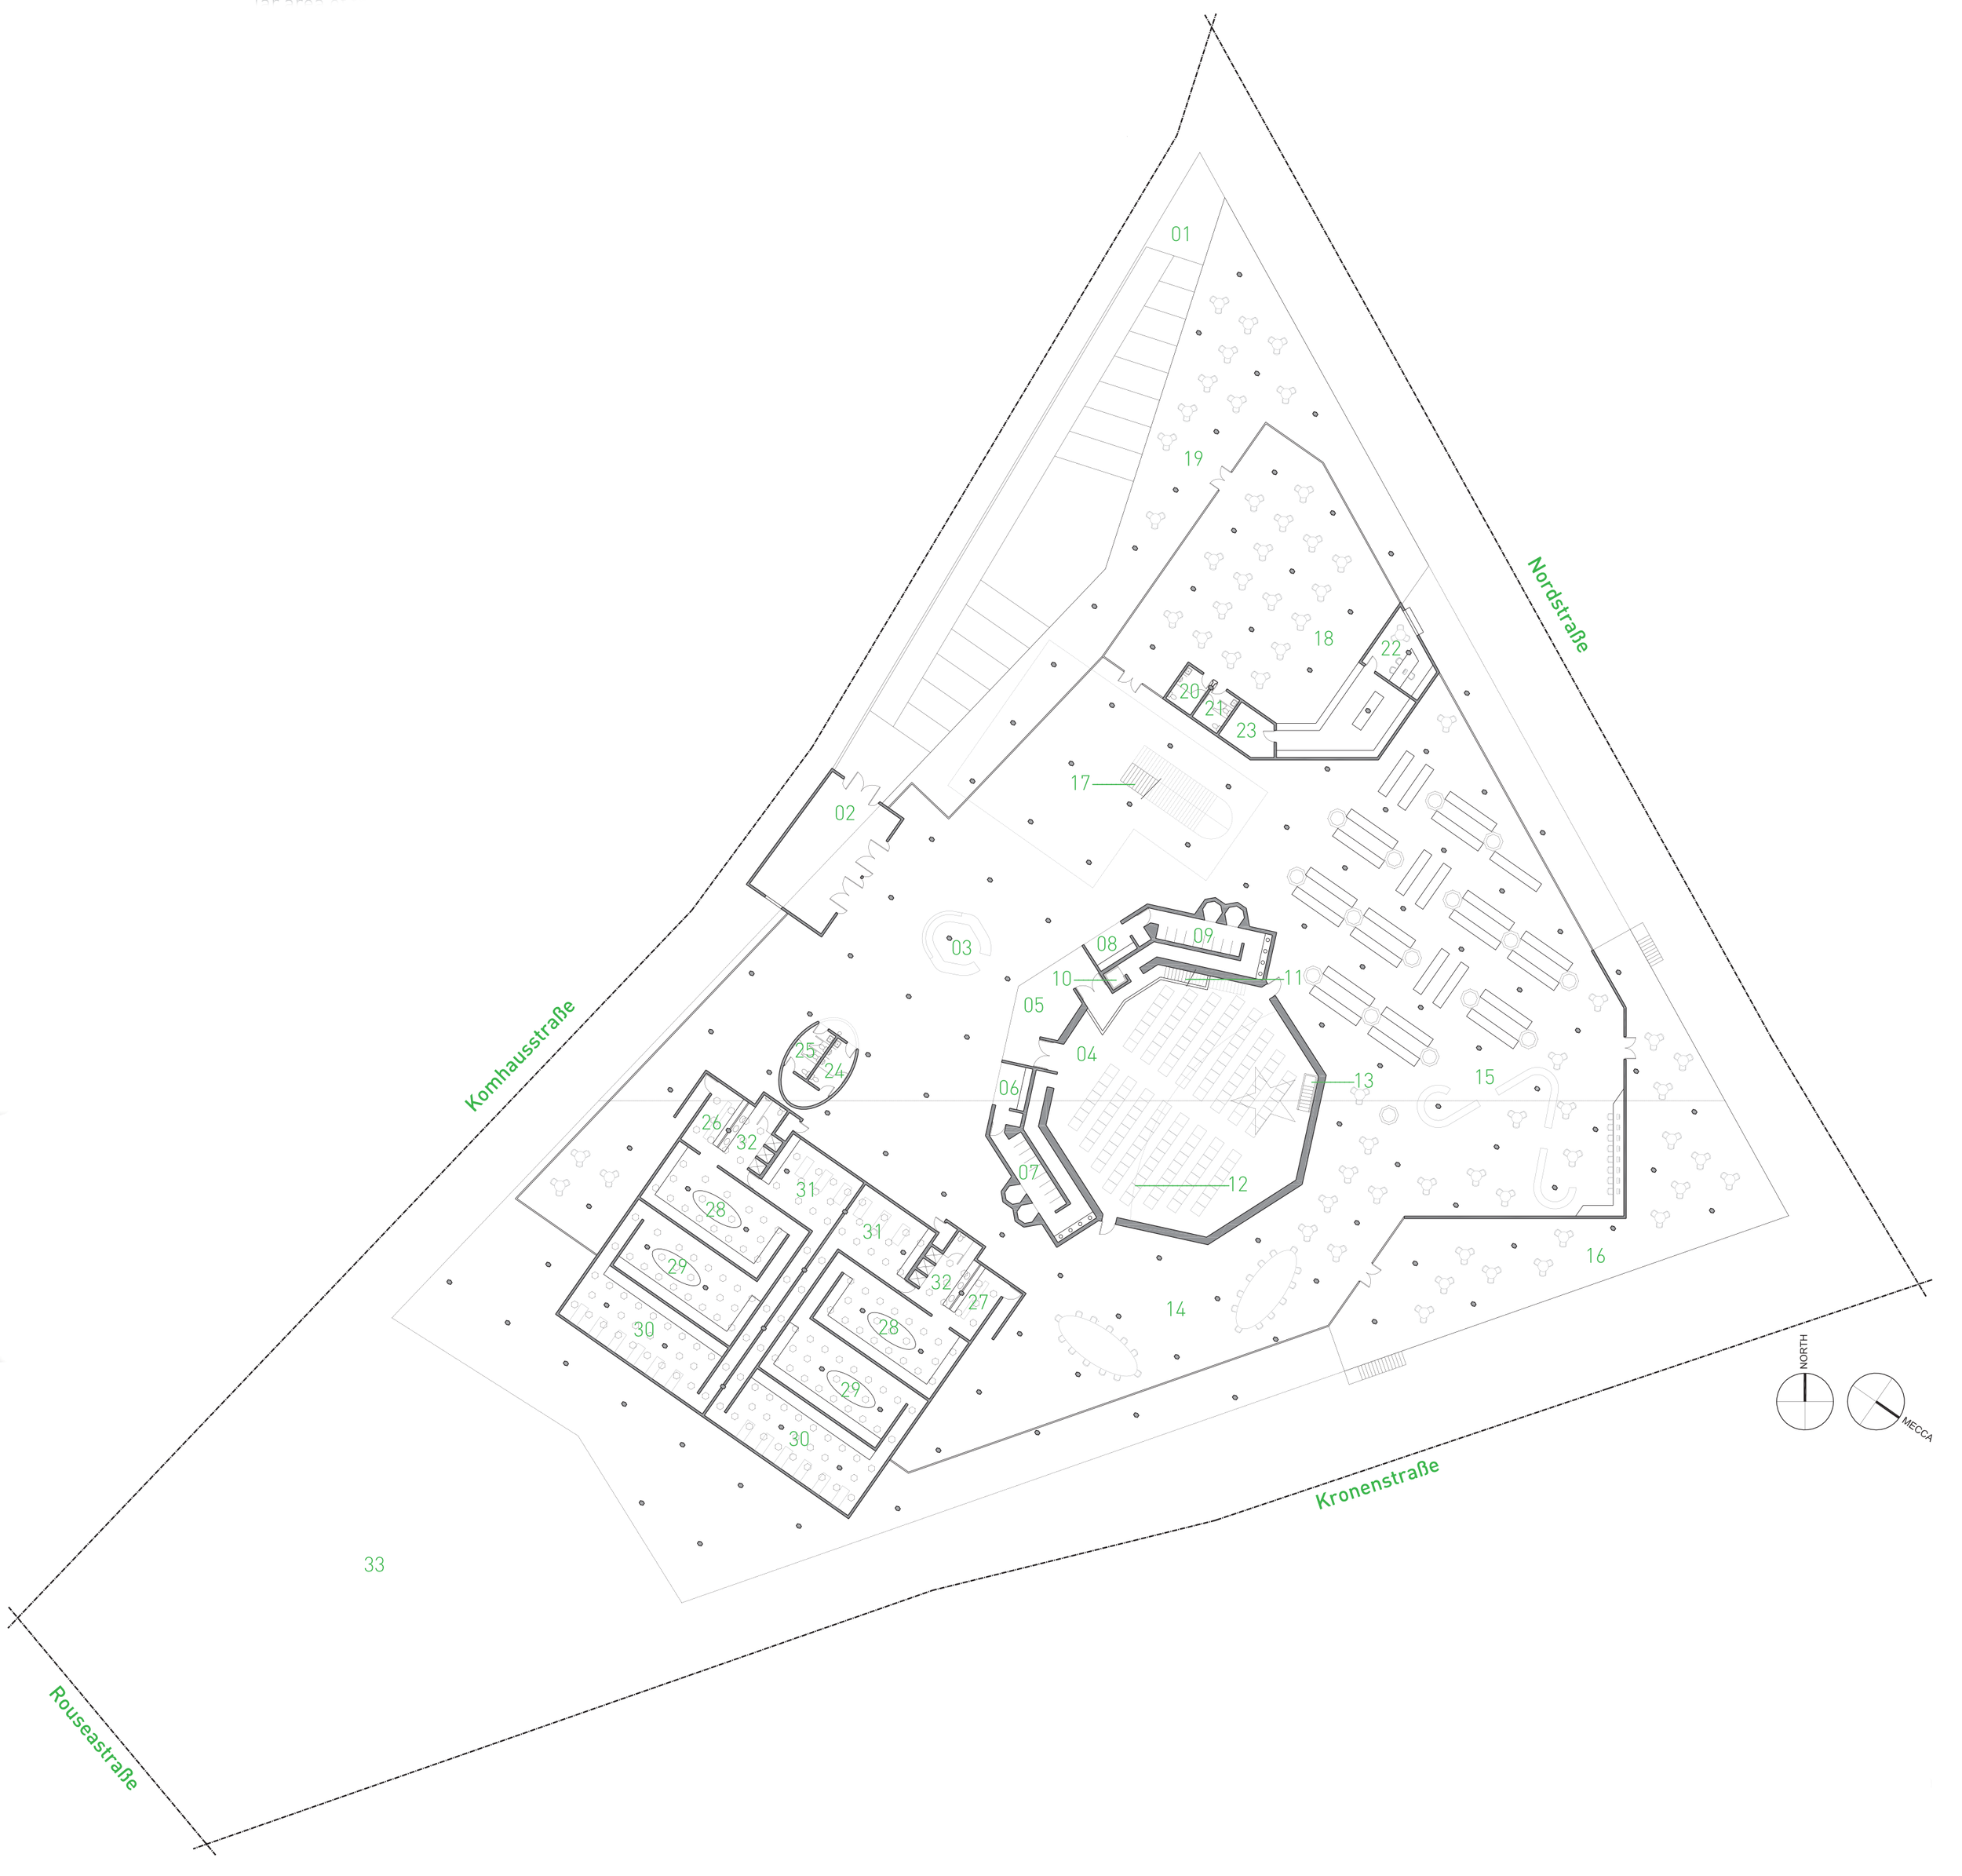 ISLAMIC CENTER FLOOR PLAN - 01 WITH LABELS.png